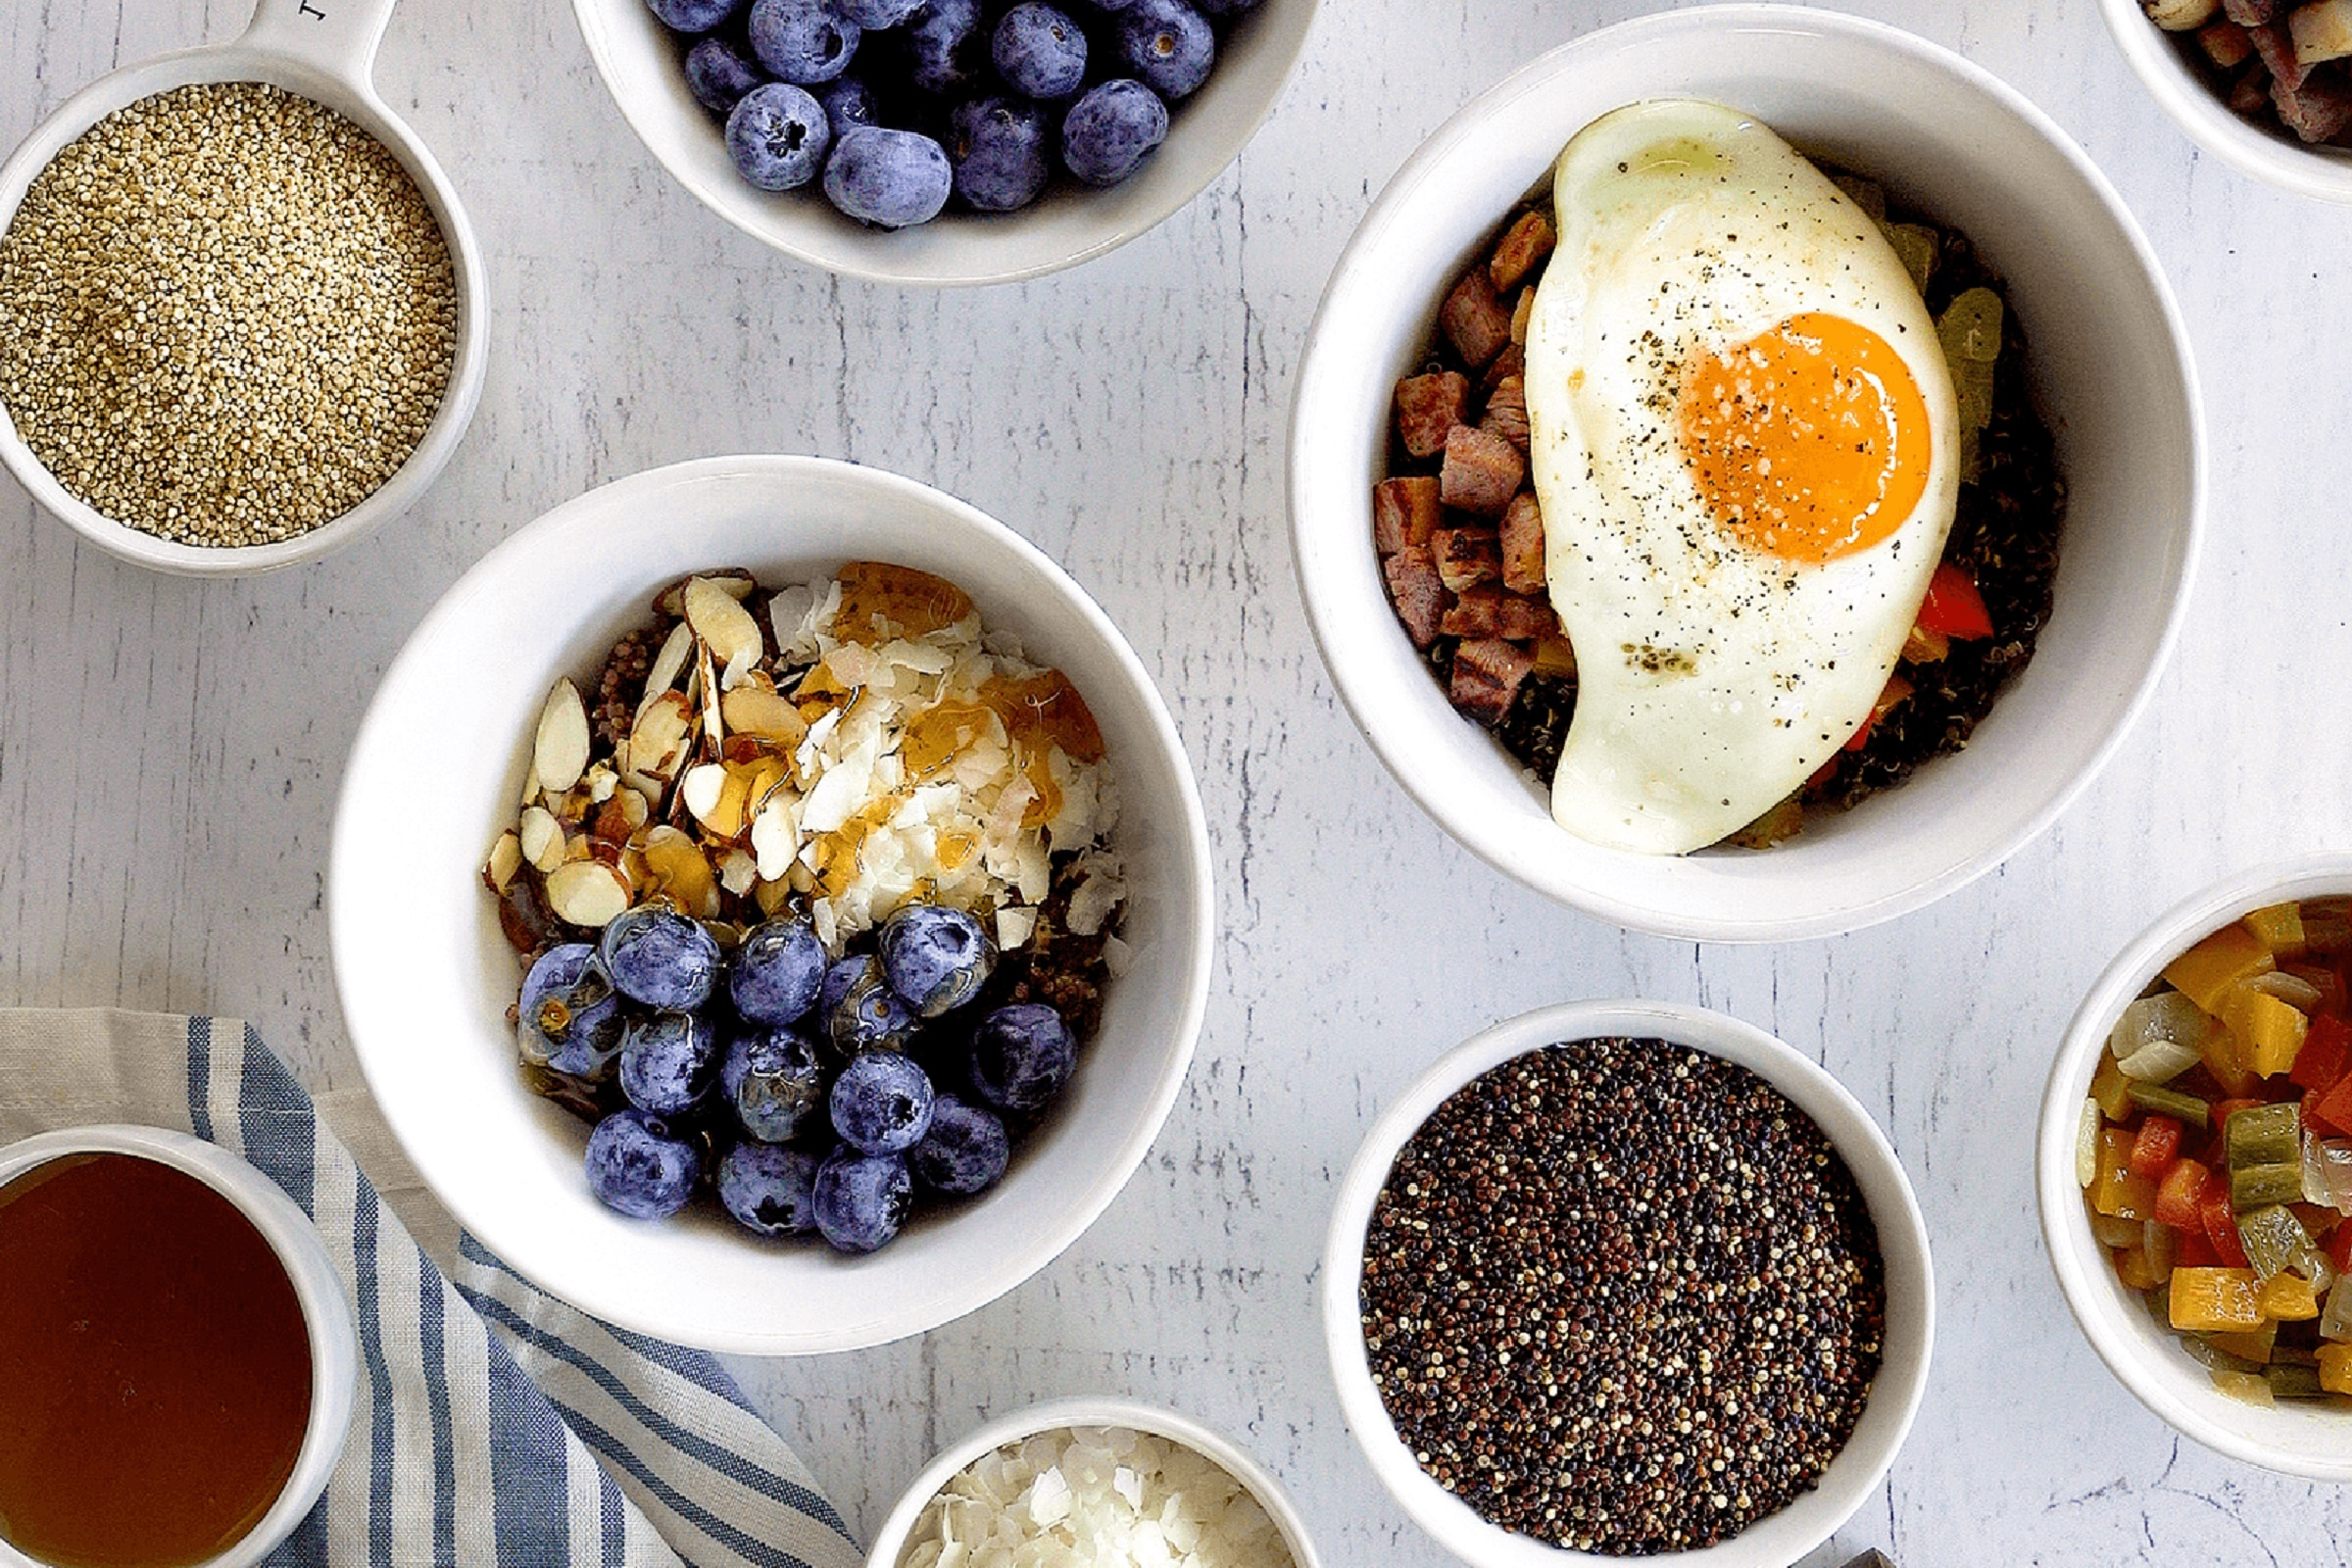 Lundberg Organic Antique White and Tri-Color Blend Quinoa are shown with sweet and savory breakfast bowls.